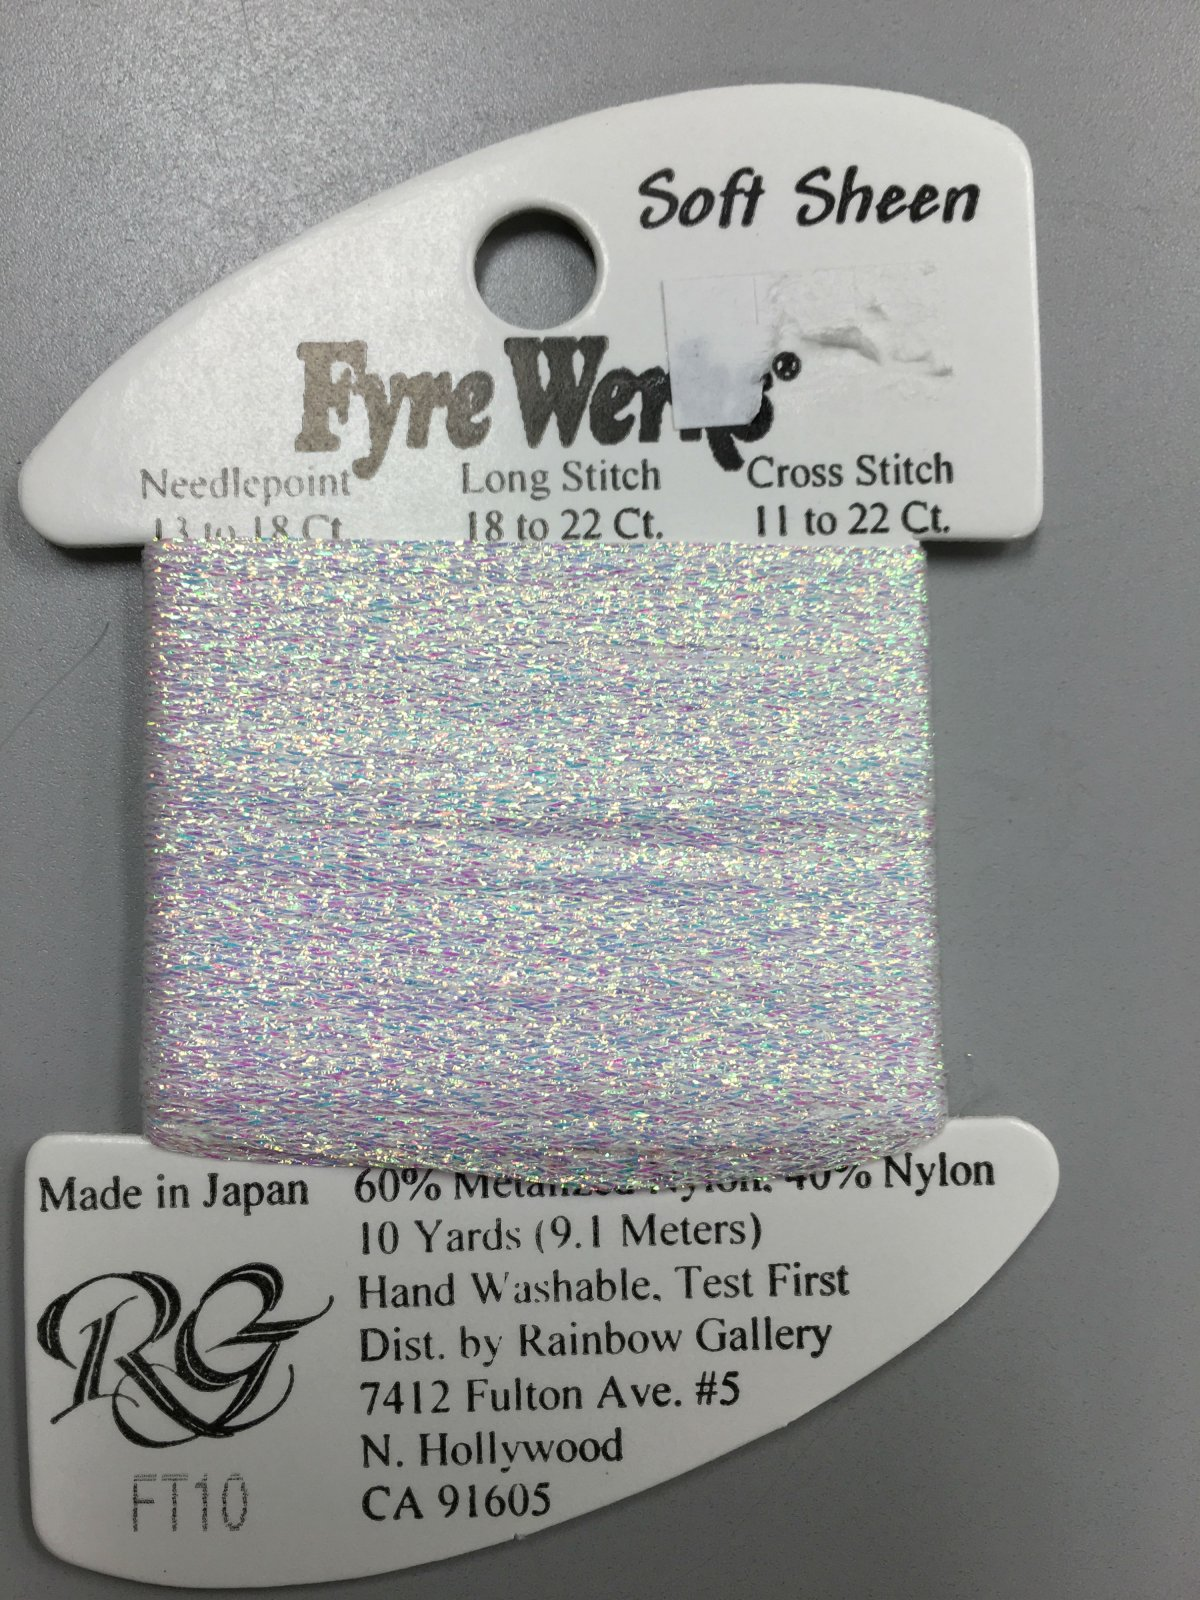 Fyre Werks Soft Sheen FT10